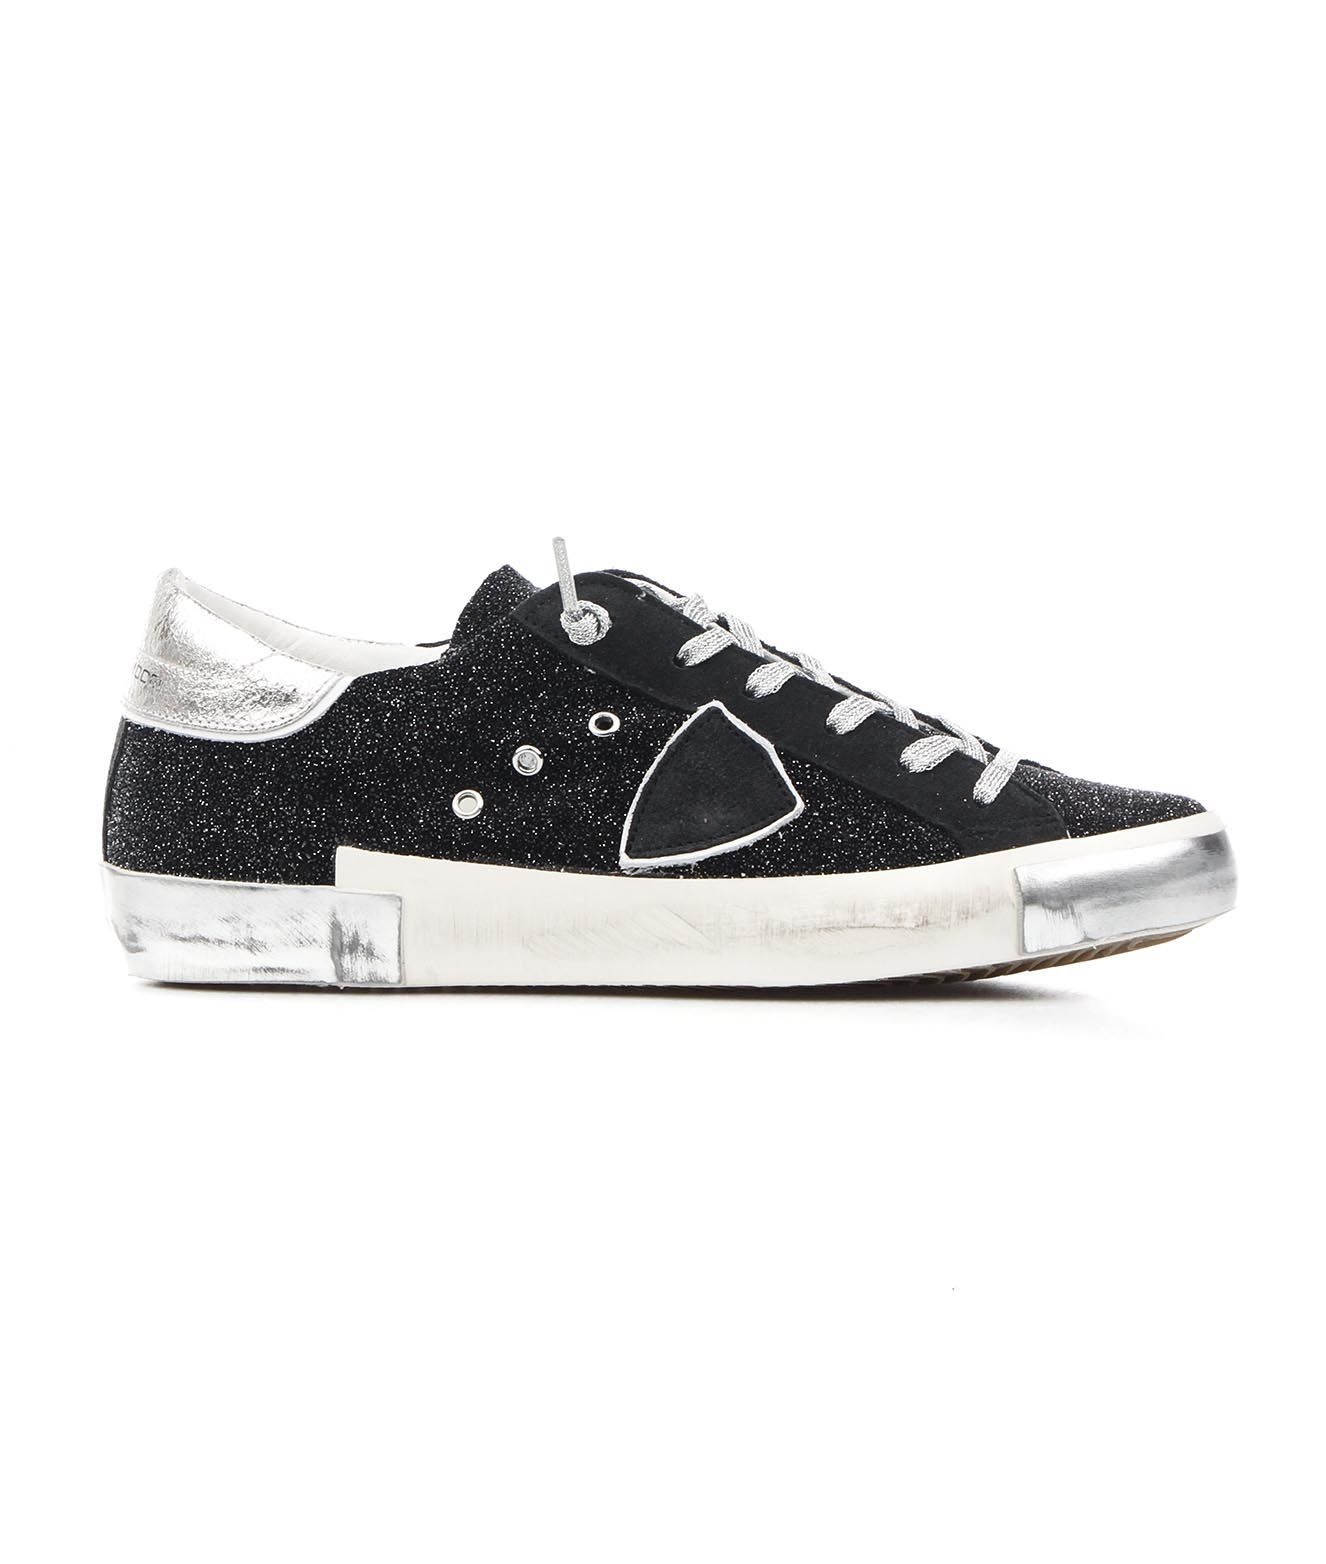 Philippe Model PHILIPPE MODEL WOMEN'S PRLDGG04 BLACK OTHER MATERIALS SNEAKERS